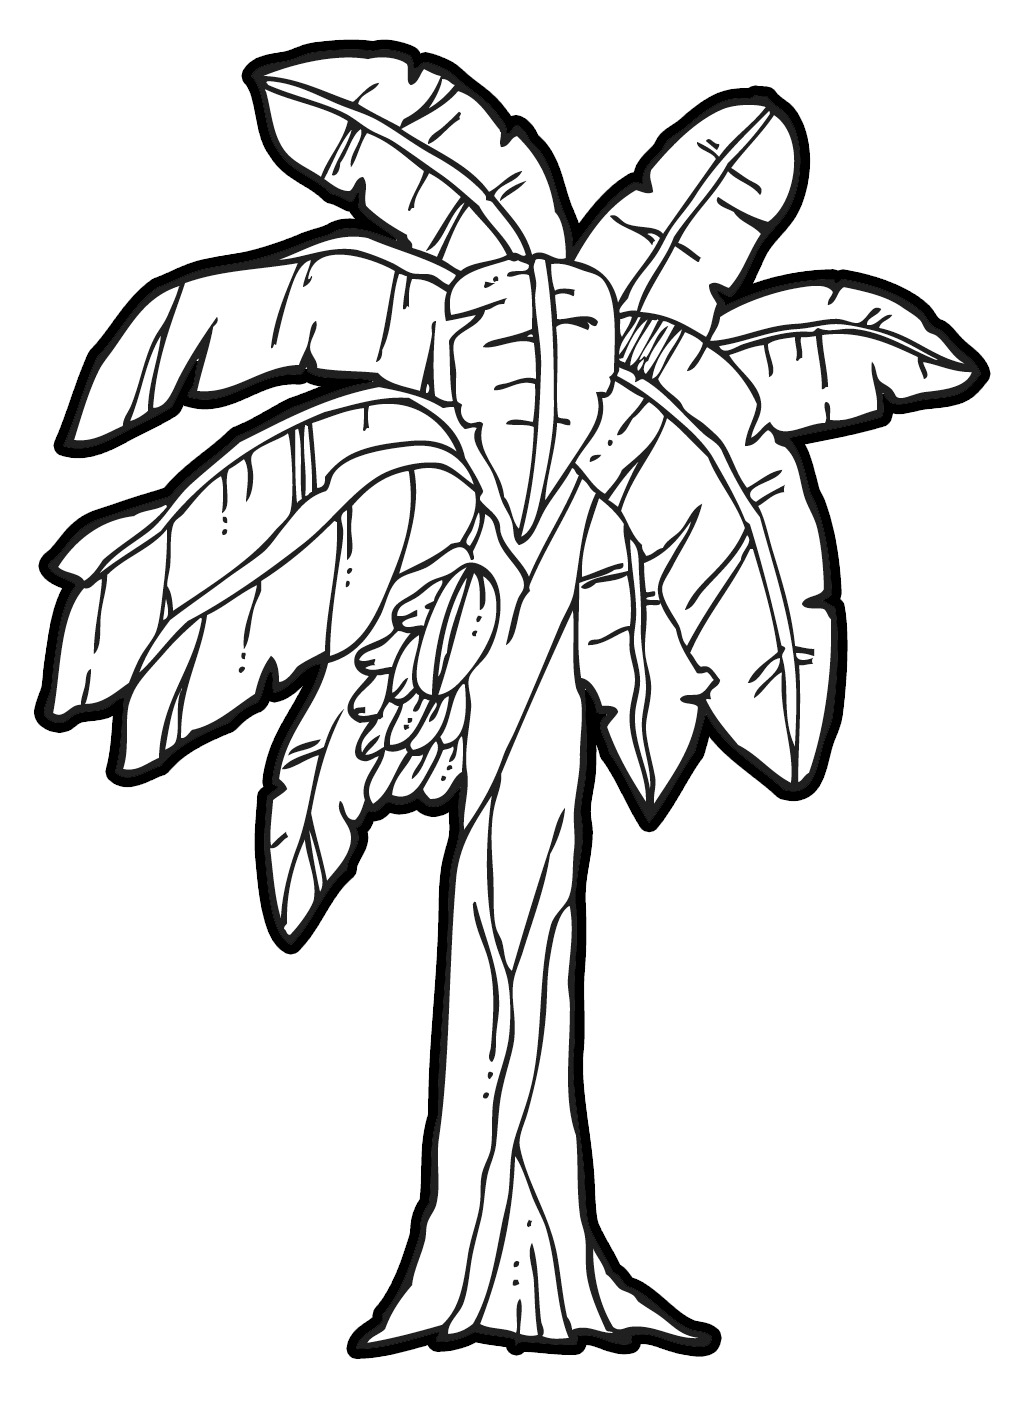 Banana clipart banana tree Clipart Vectors  Tree Banana